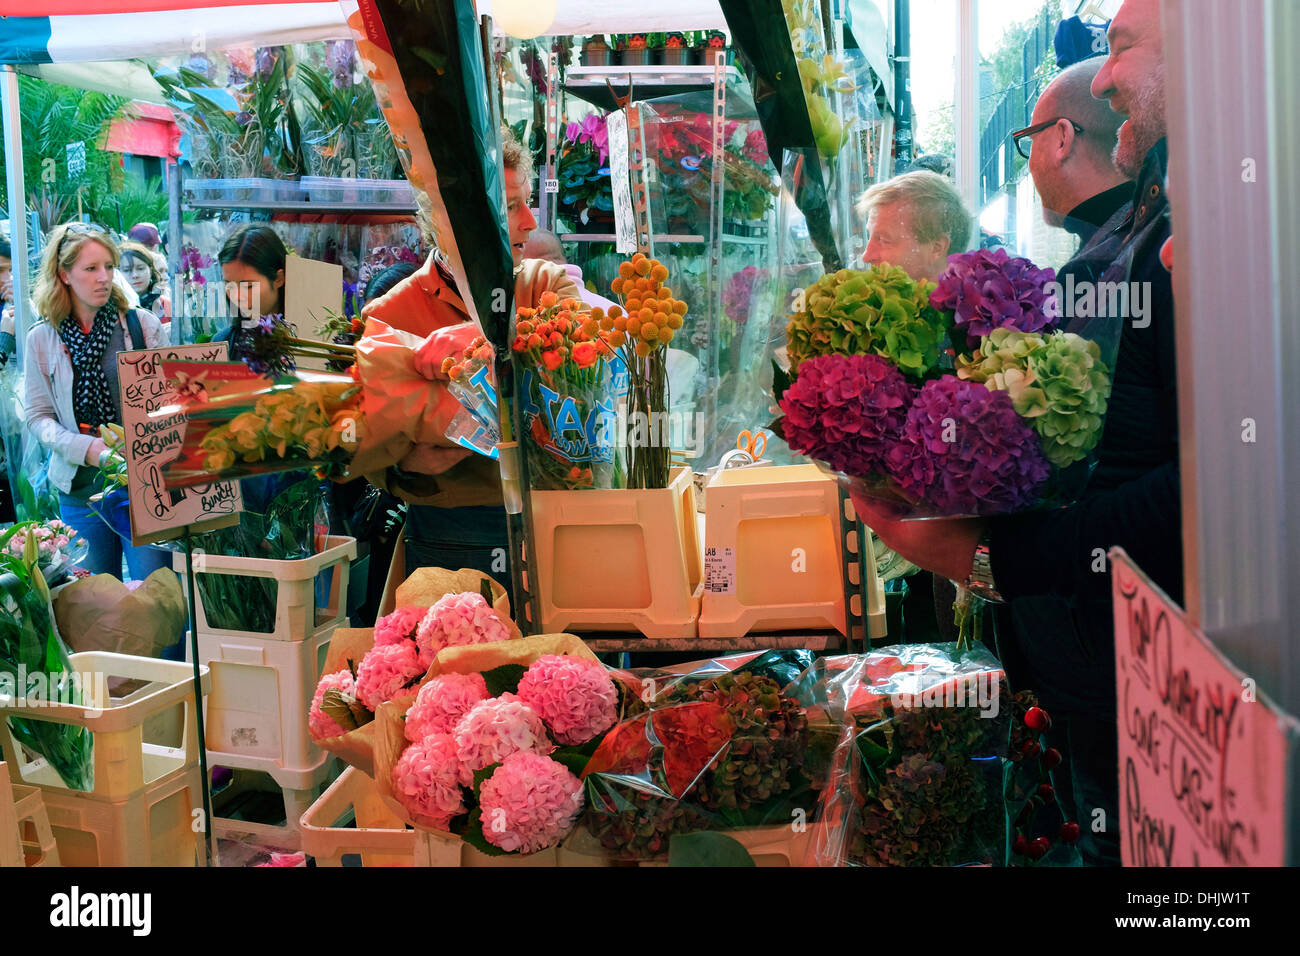 Customers buying flowers at Columbia Road flower market, East London, UK - Stock Image